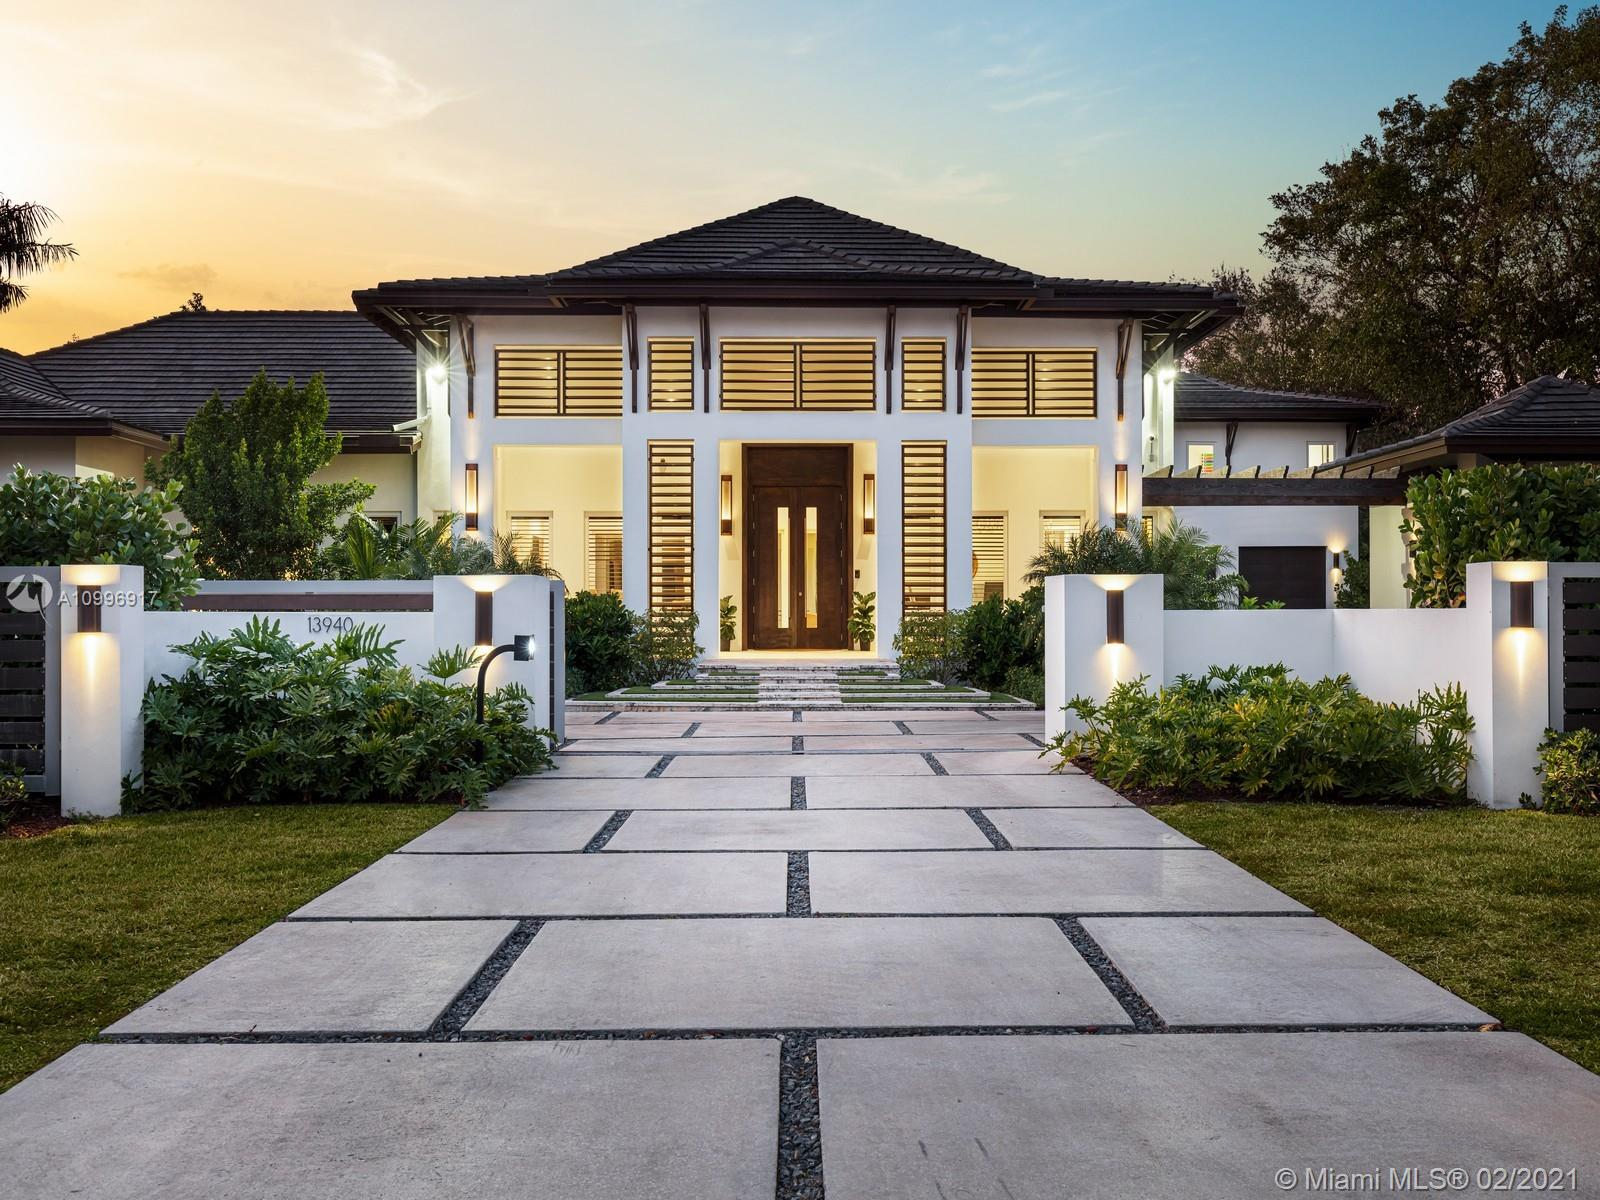 2019 Bali Style New Construction home located on Old Cutler Road & near Pinecrest. This exquisite one-story estate welcomes you w/a spectacular open flr plan, featuring 20-ft volume ceilings, large living rm, family rm, formal dining rm, & wine tasting rm w/gorgeous wet bar & glass wine gallery. Stunning chefs' kit w/vaulted ceilings, top-of-the-line appl, walk-in pantry, butler's pantry & breakfast area. Discover elegant high-end finishes throughout incl marble flrs, wd accents & smart home integration. Master Ste offers panoramic glass hallway, sitting area, walk-in closet, spa bath & outdr shower. Find an outdr oasis w/covered terr, summer kit & resort style pool w/tanning ledge. Add'l Features: gated, Study/Den, gas fireplace, 2 laundry rms, detached gym, & 2 car gar w/space for lifts.